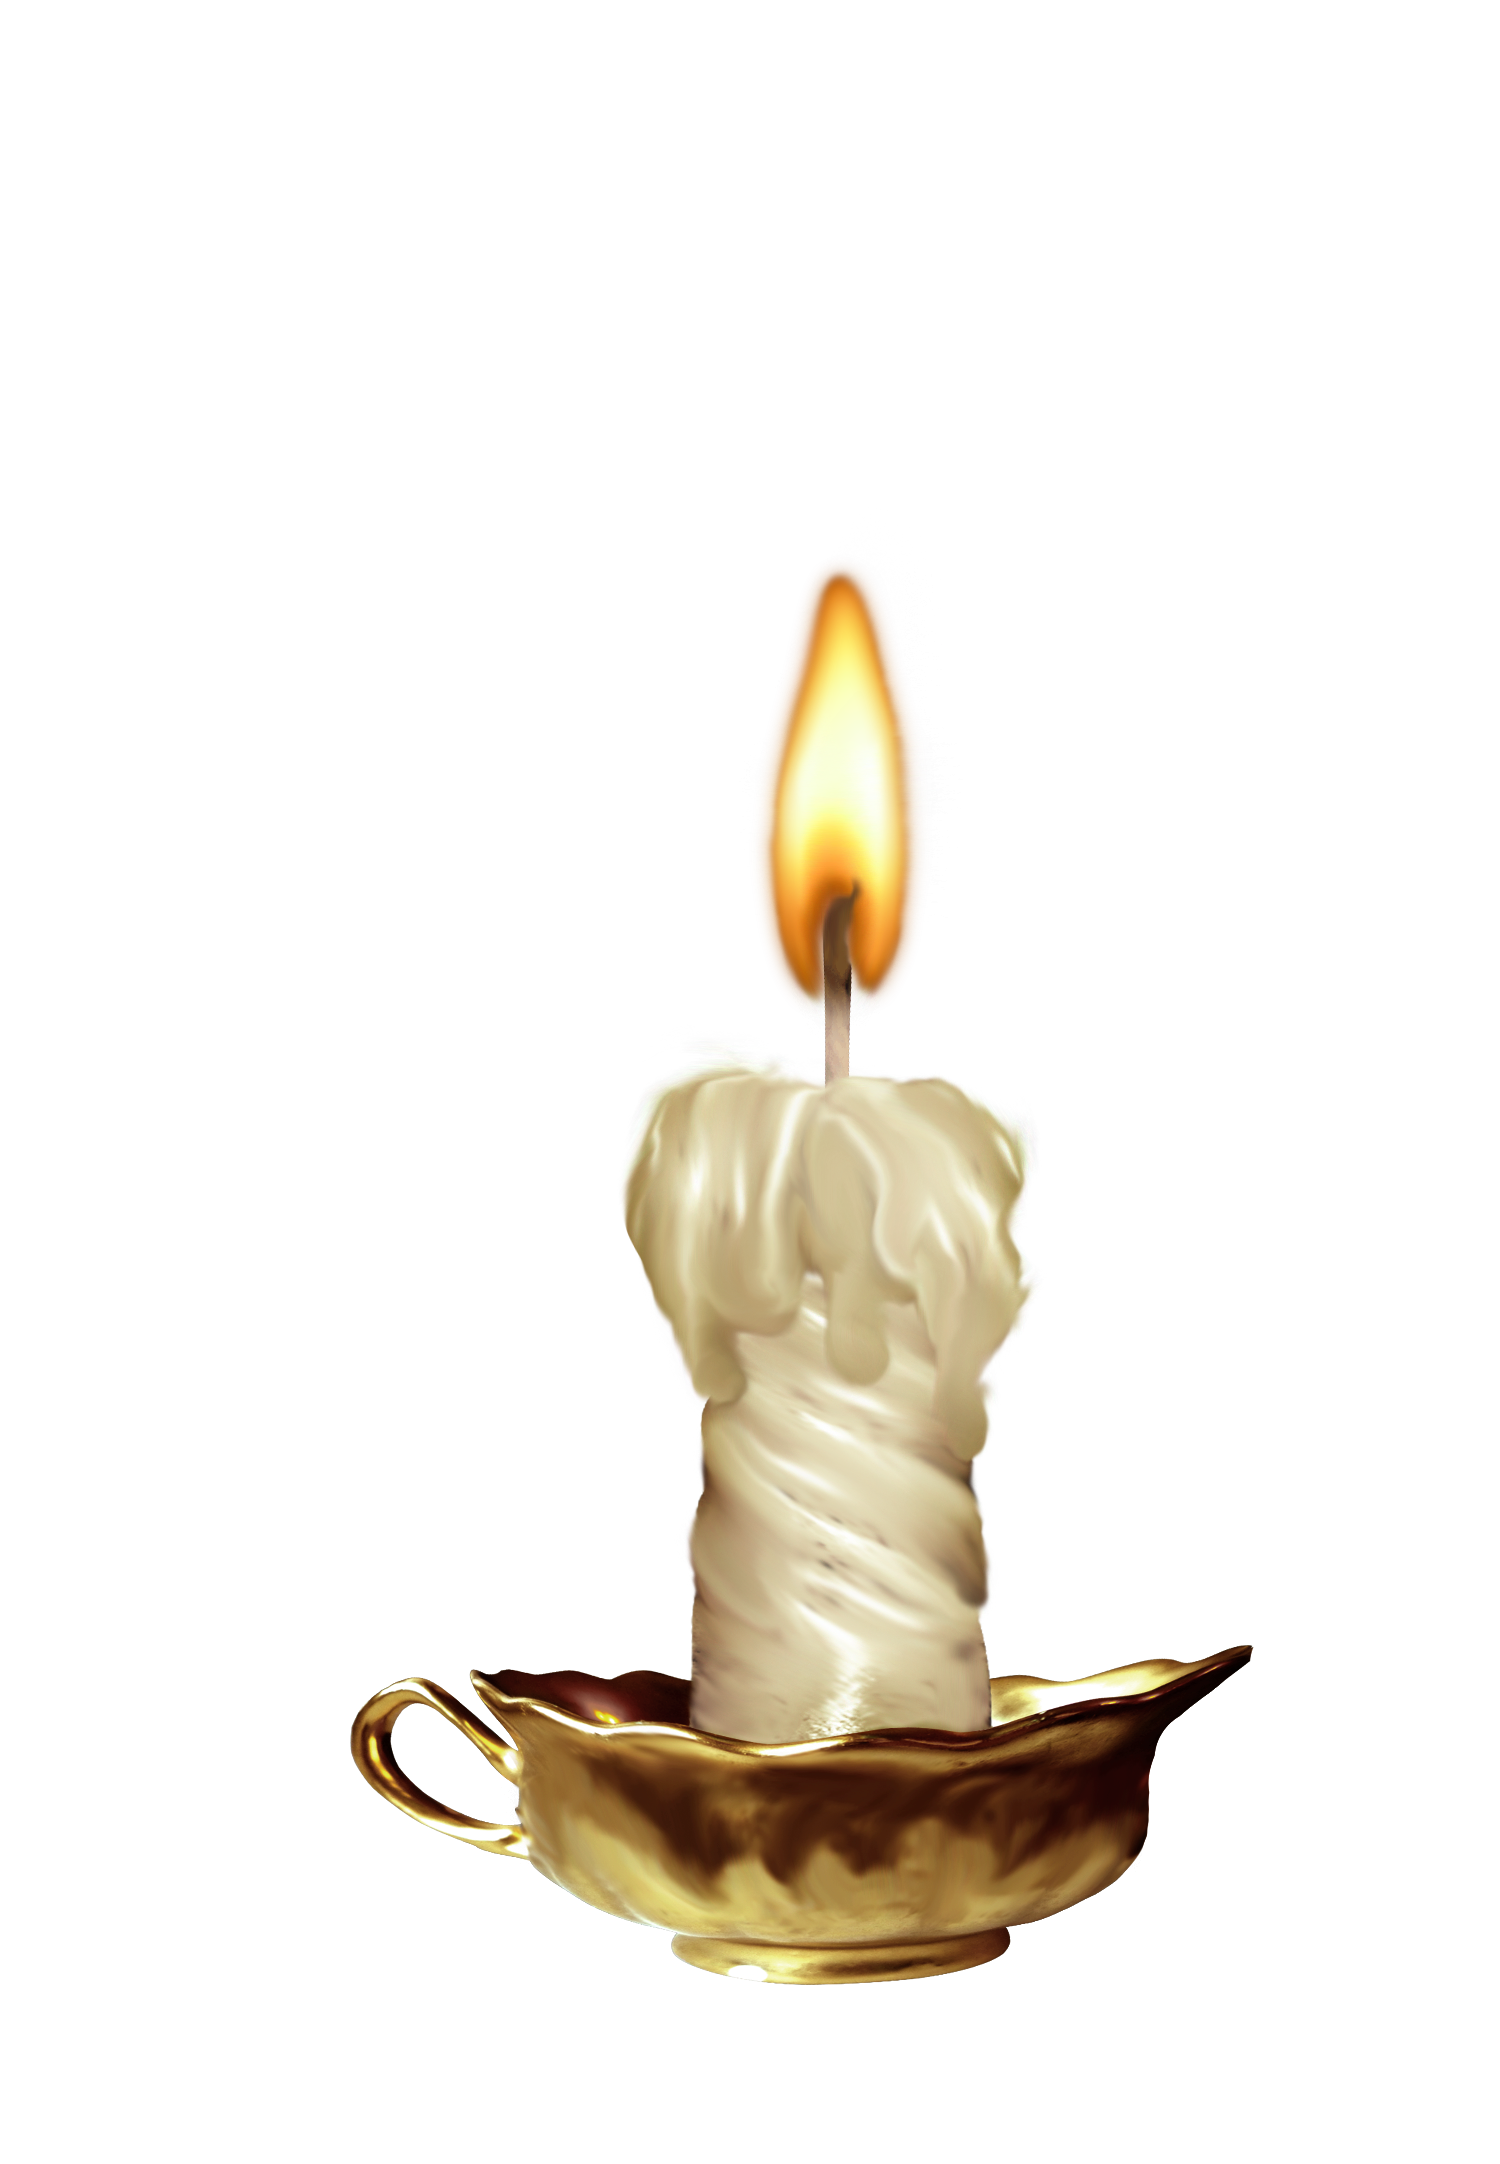 Christmas candlelight clipart svg transparent download Candle Light Clip art - Burning candles 1500*2164 transprent Png ... svg transparent download